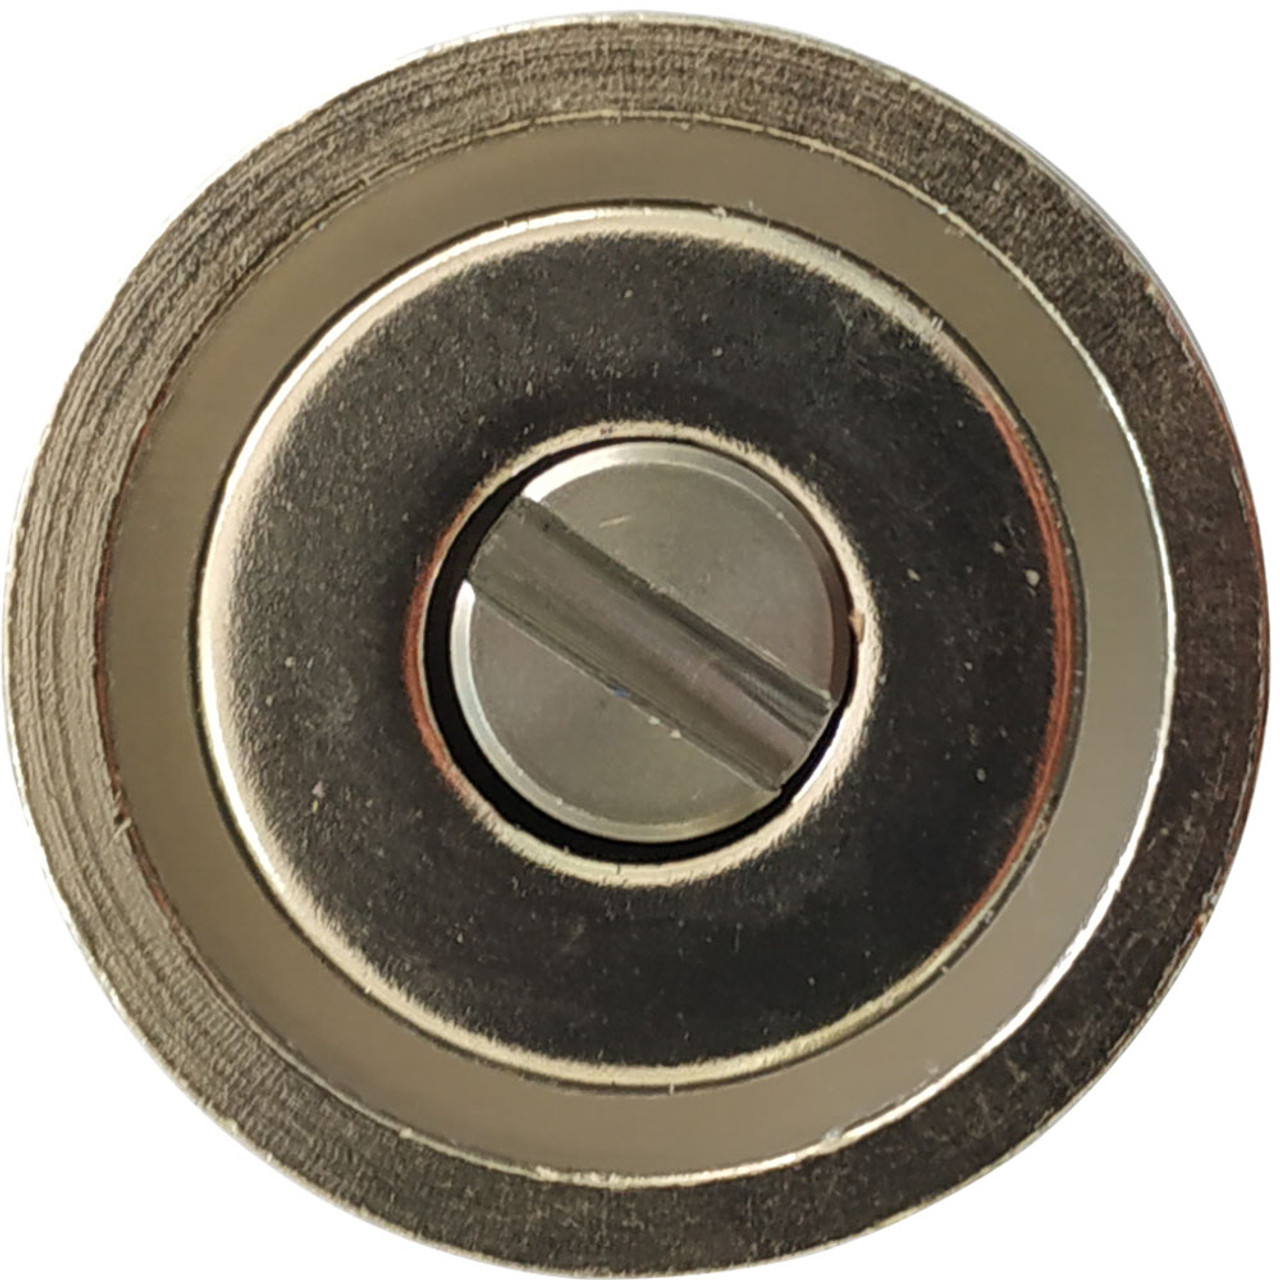 Front side the 25 mm magnet. The mounting captive screw slot is wide to be used with a small coin like the US penny which is non magnetic.